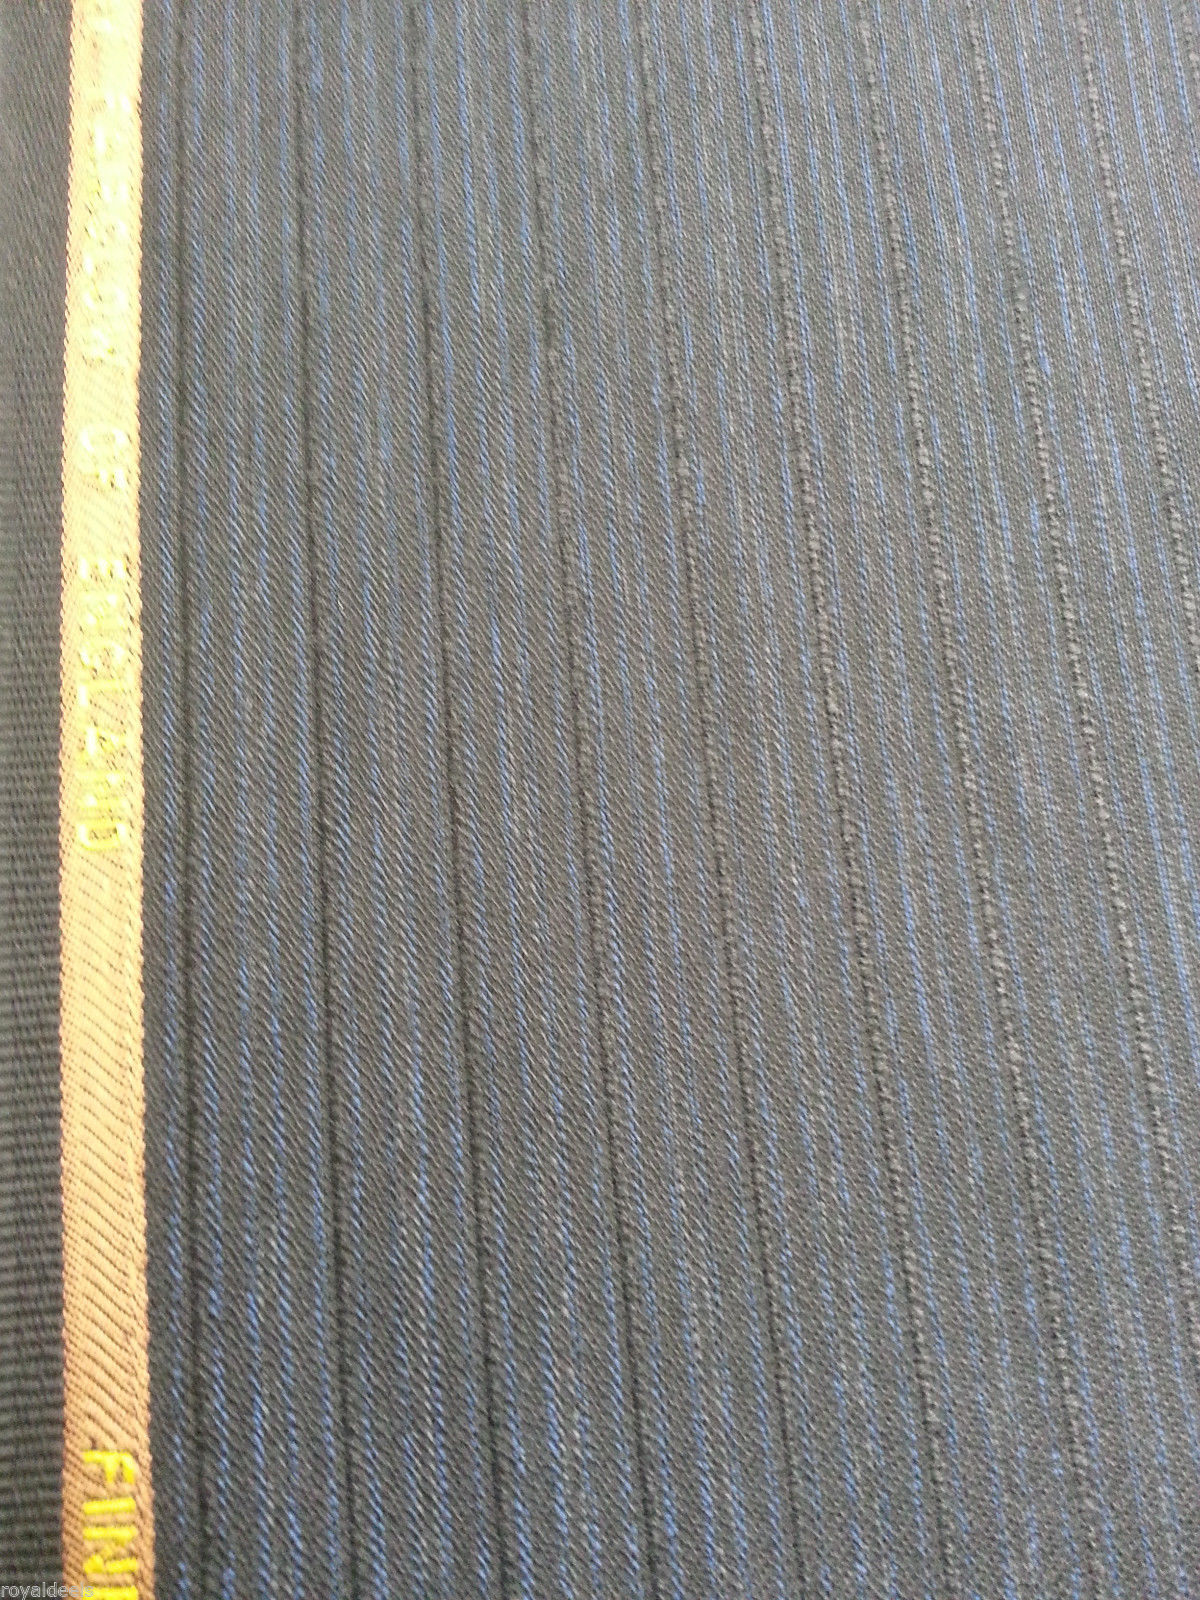 5YD FABRIC SUPER FINE BLUE GREY  ENGLISH WOOL SUITING FOR MEN AND WOMEN